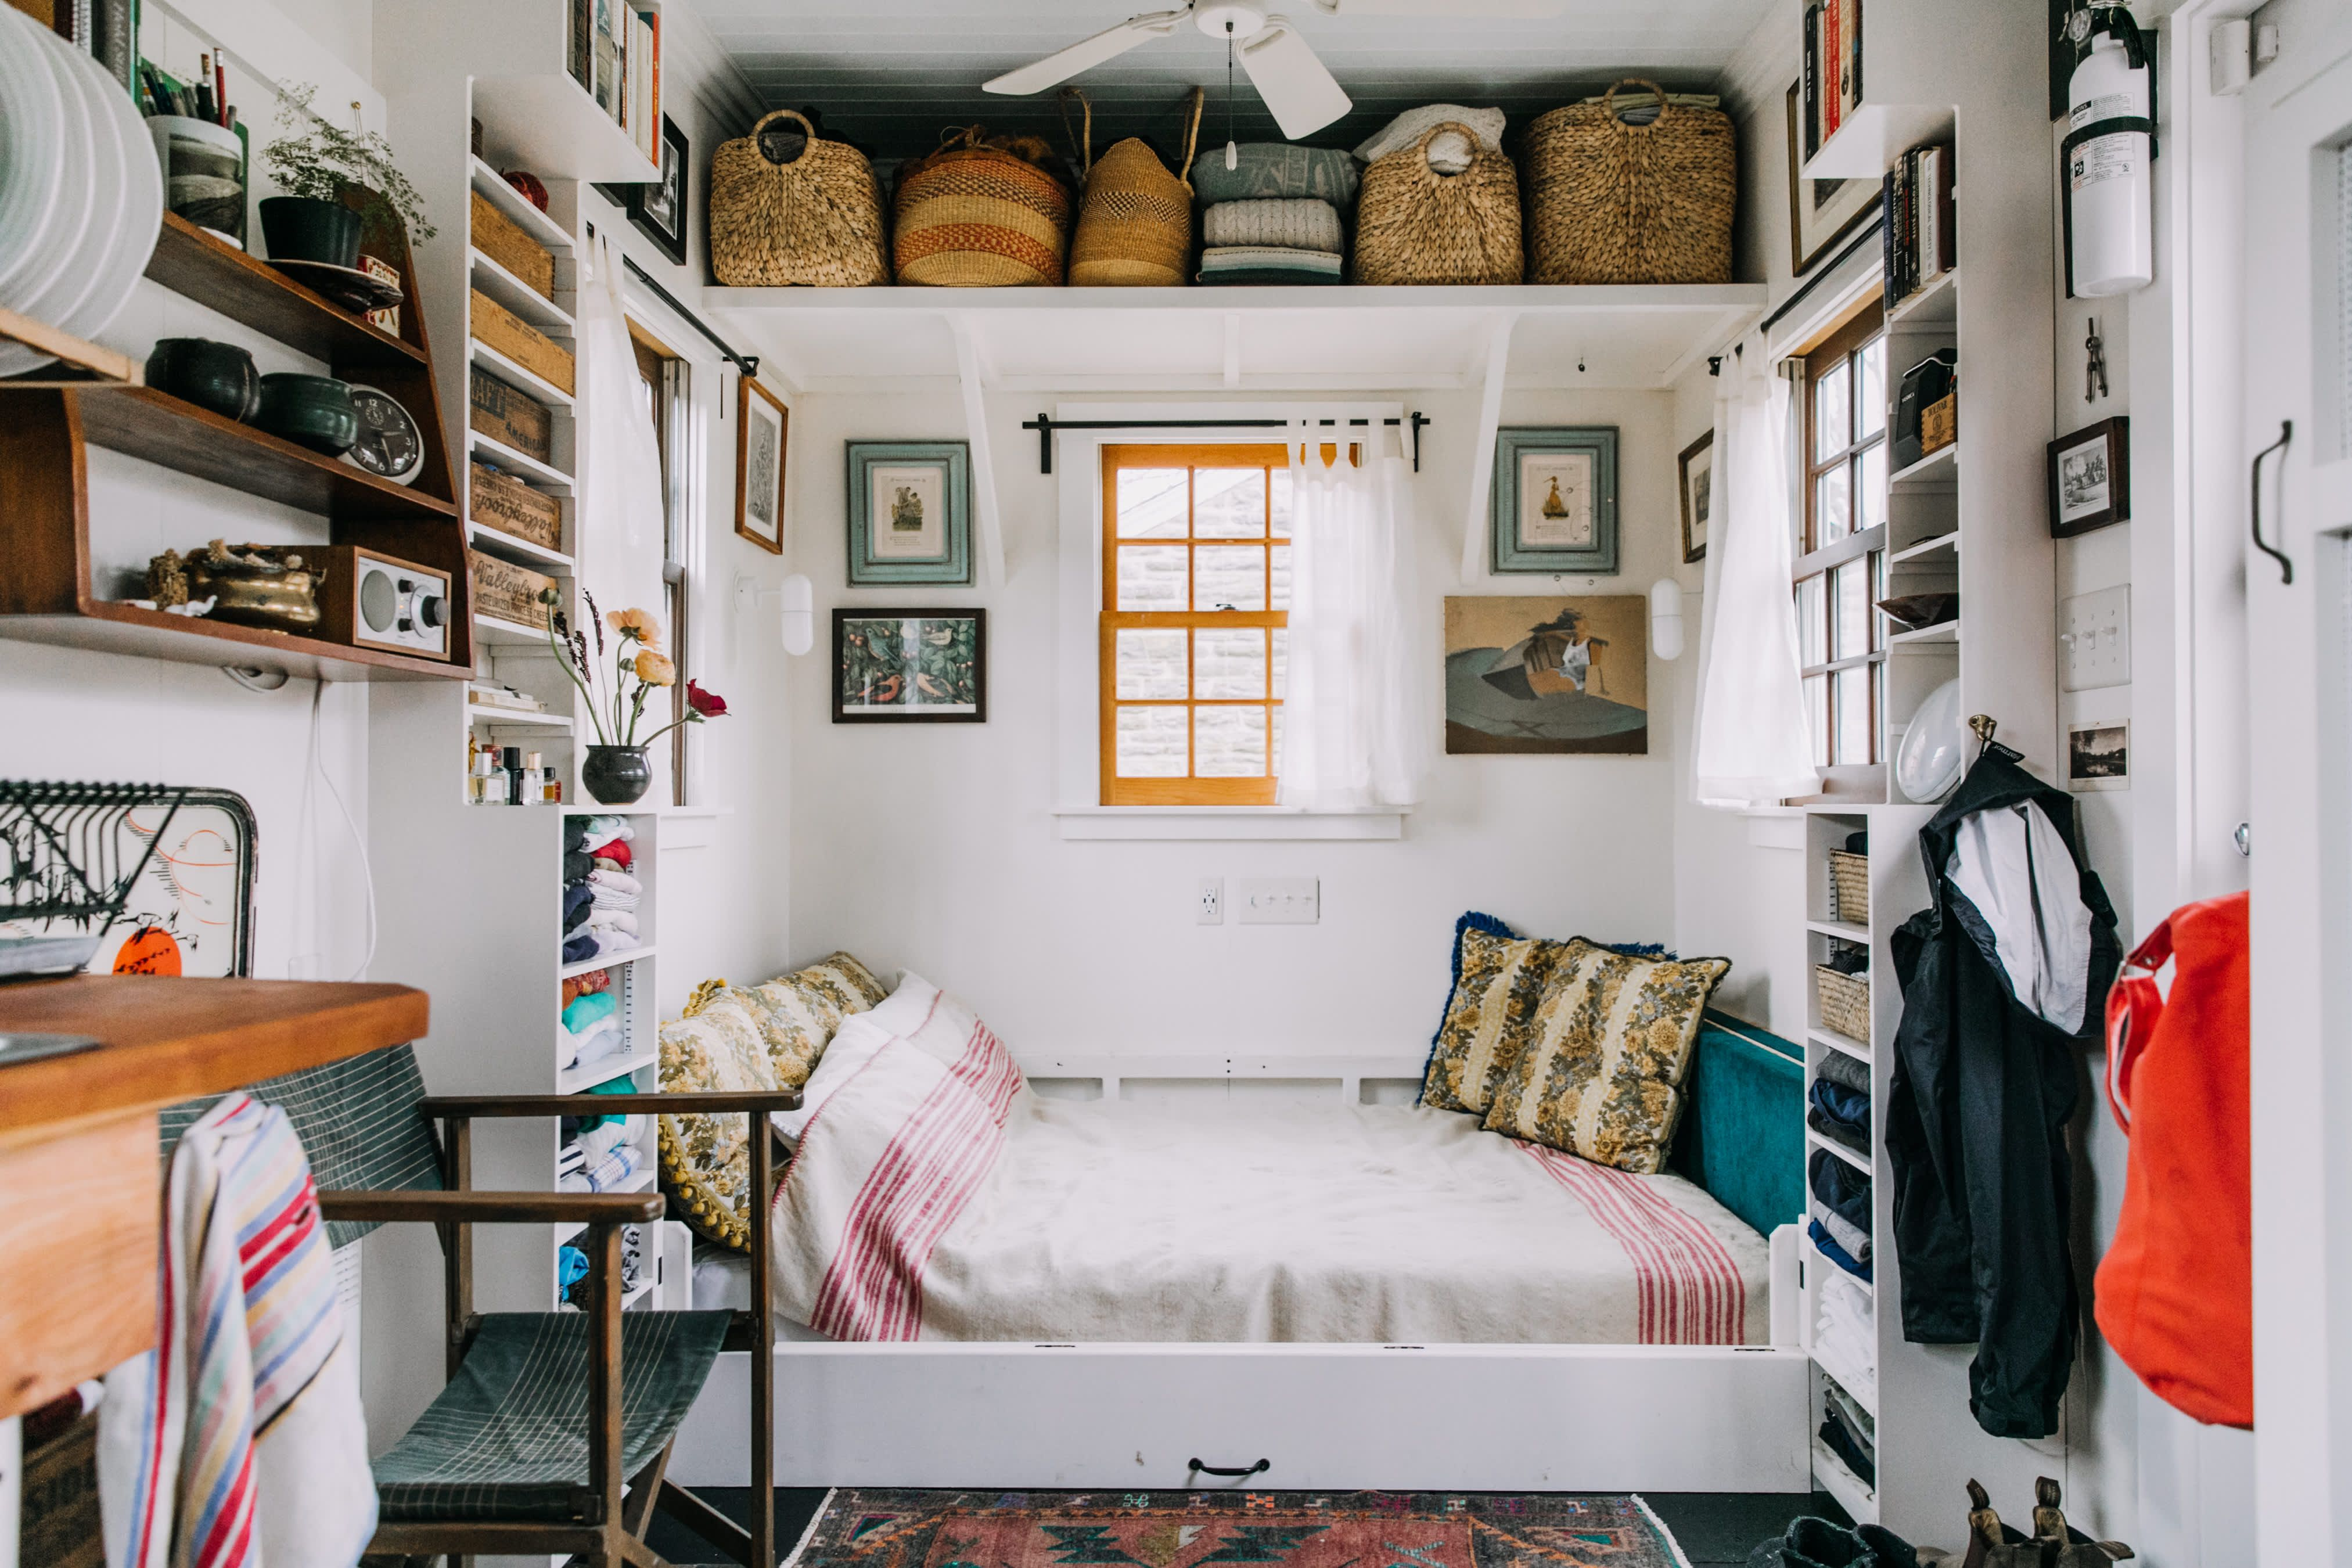 This Is One of the Most Beautiful, Livable Tiny Houses We